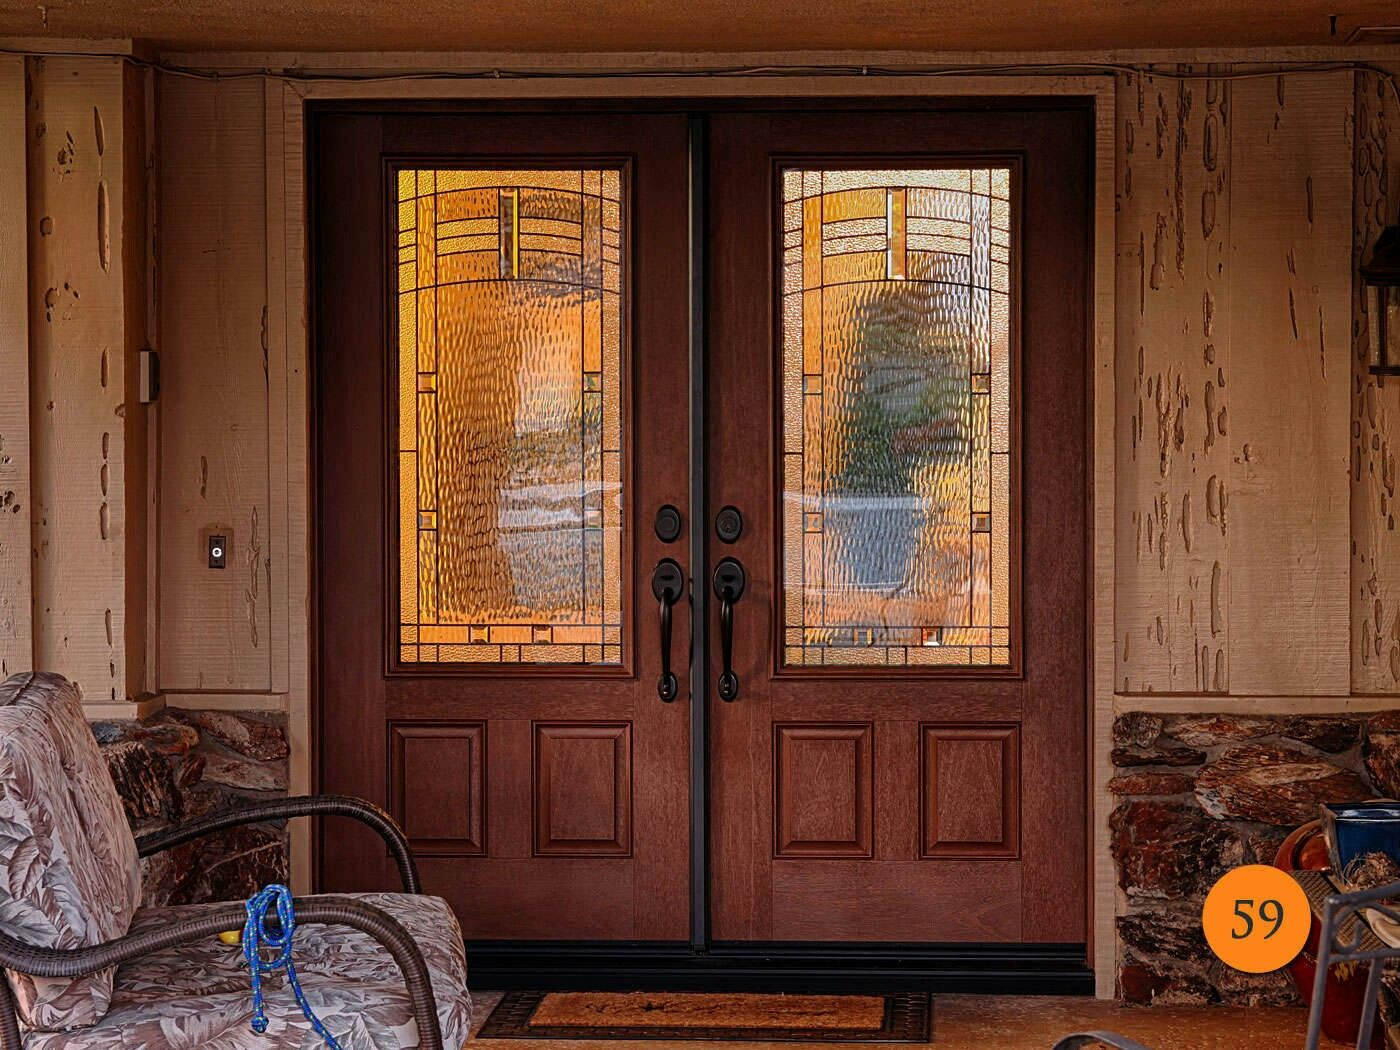 Find this Pin and more on double outside front doors by joanneconant Pin by Joanne Conant on double outside front doors   Pinterest  . Double Entry Doors With Glass. Home Design Ideas